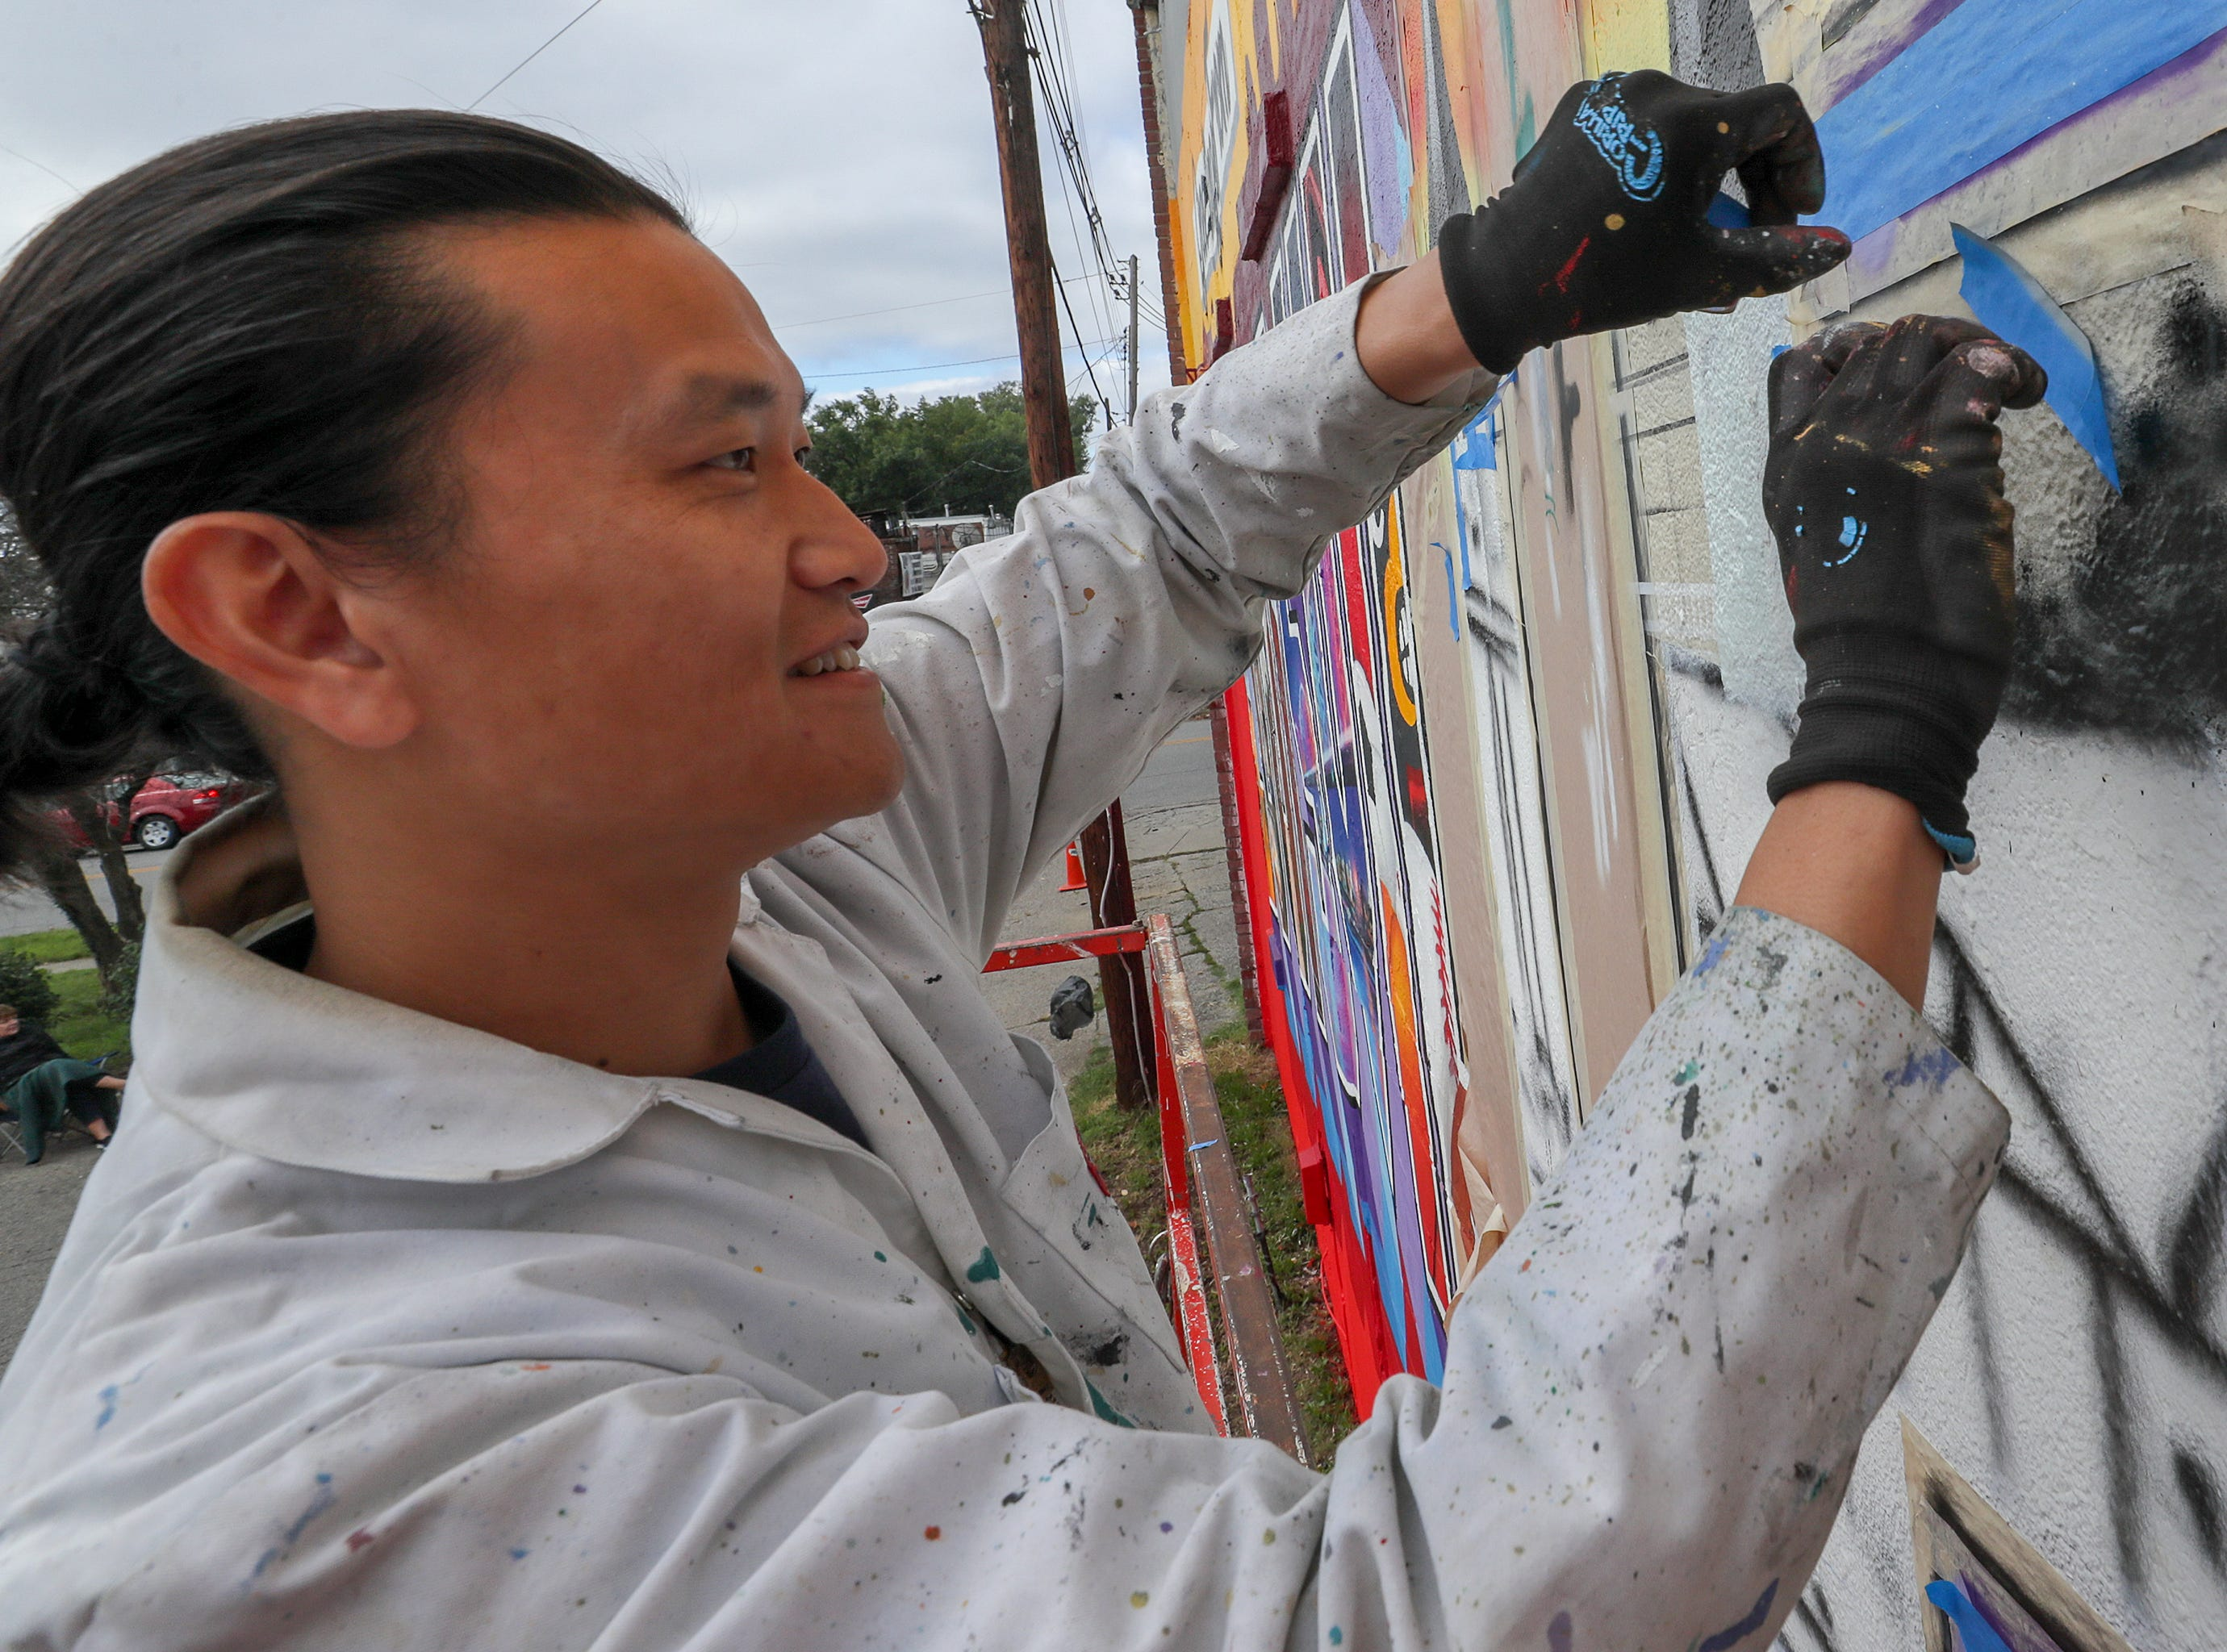 Artist Victor Ving puts the finishing touches on a mural on Central Avenue on Thursday morning.  The mural pays homage to post cards and is part of the Greetings Tour with photographer Lisa Beggs.  The pair have created 32 murals in 16 states with a goal of creating one in every state.  This is the first one in Kentucky.  The pair were in Alaska before coming to Louisville.  The building belongs to John and Mary Kay Dixon.  The group Often Seen Rarely Spoken also created some of the letters that depict the Louisville skyline, bourbon, Churchill Downs, Louisville Slugger, Louisville Cardinals and the Big Four Pedestrian Bridge.